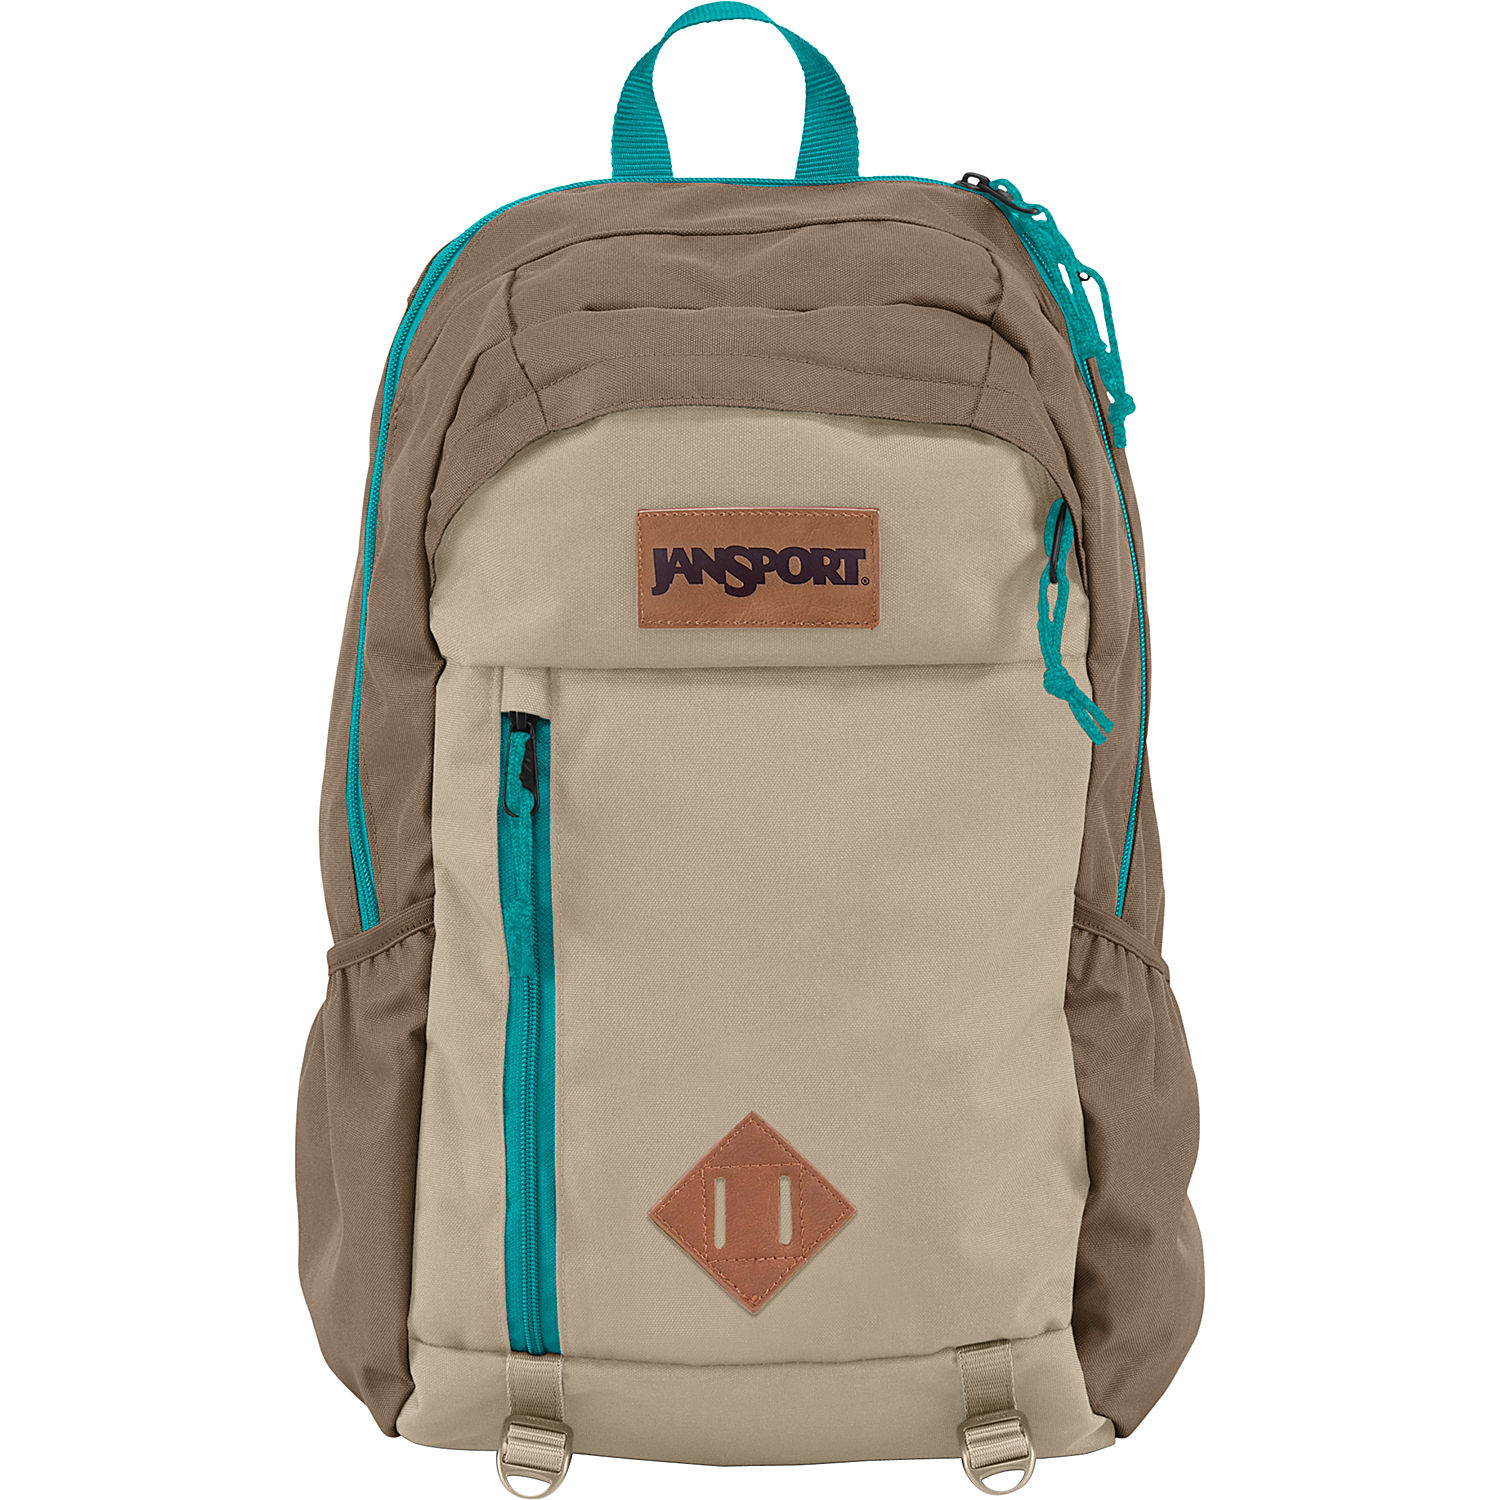 stores that carry jansport backpacks Backpack Tools